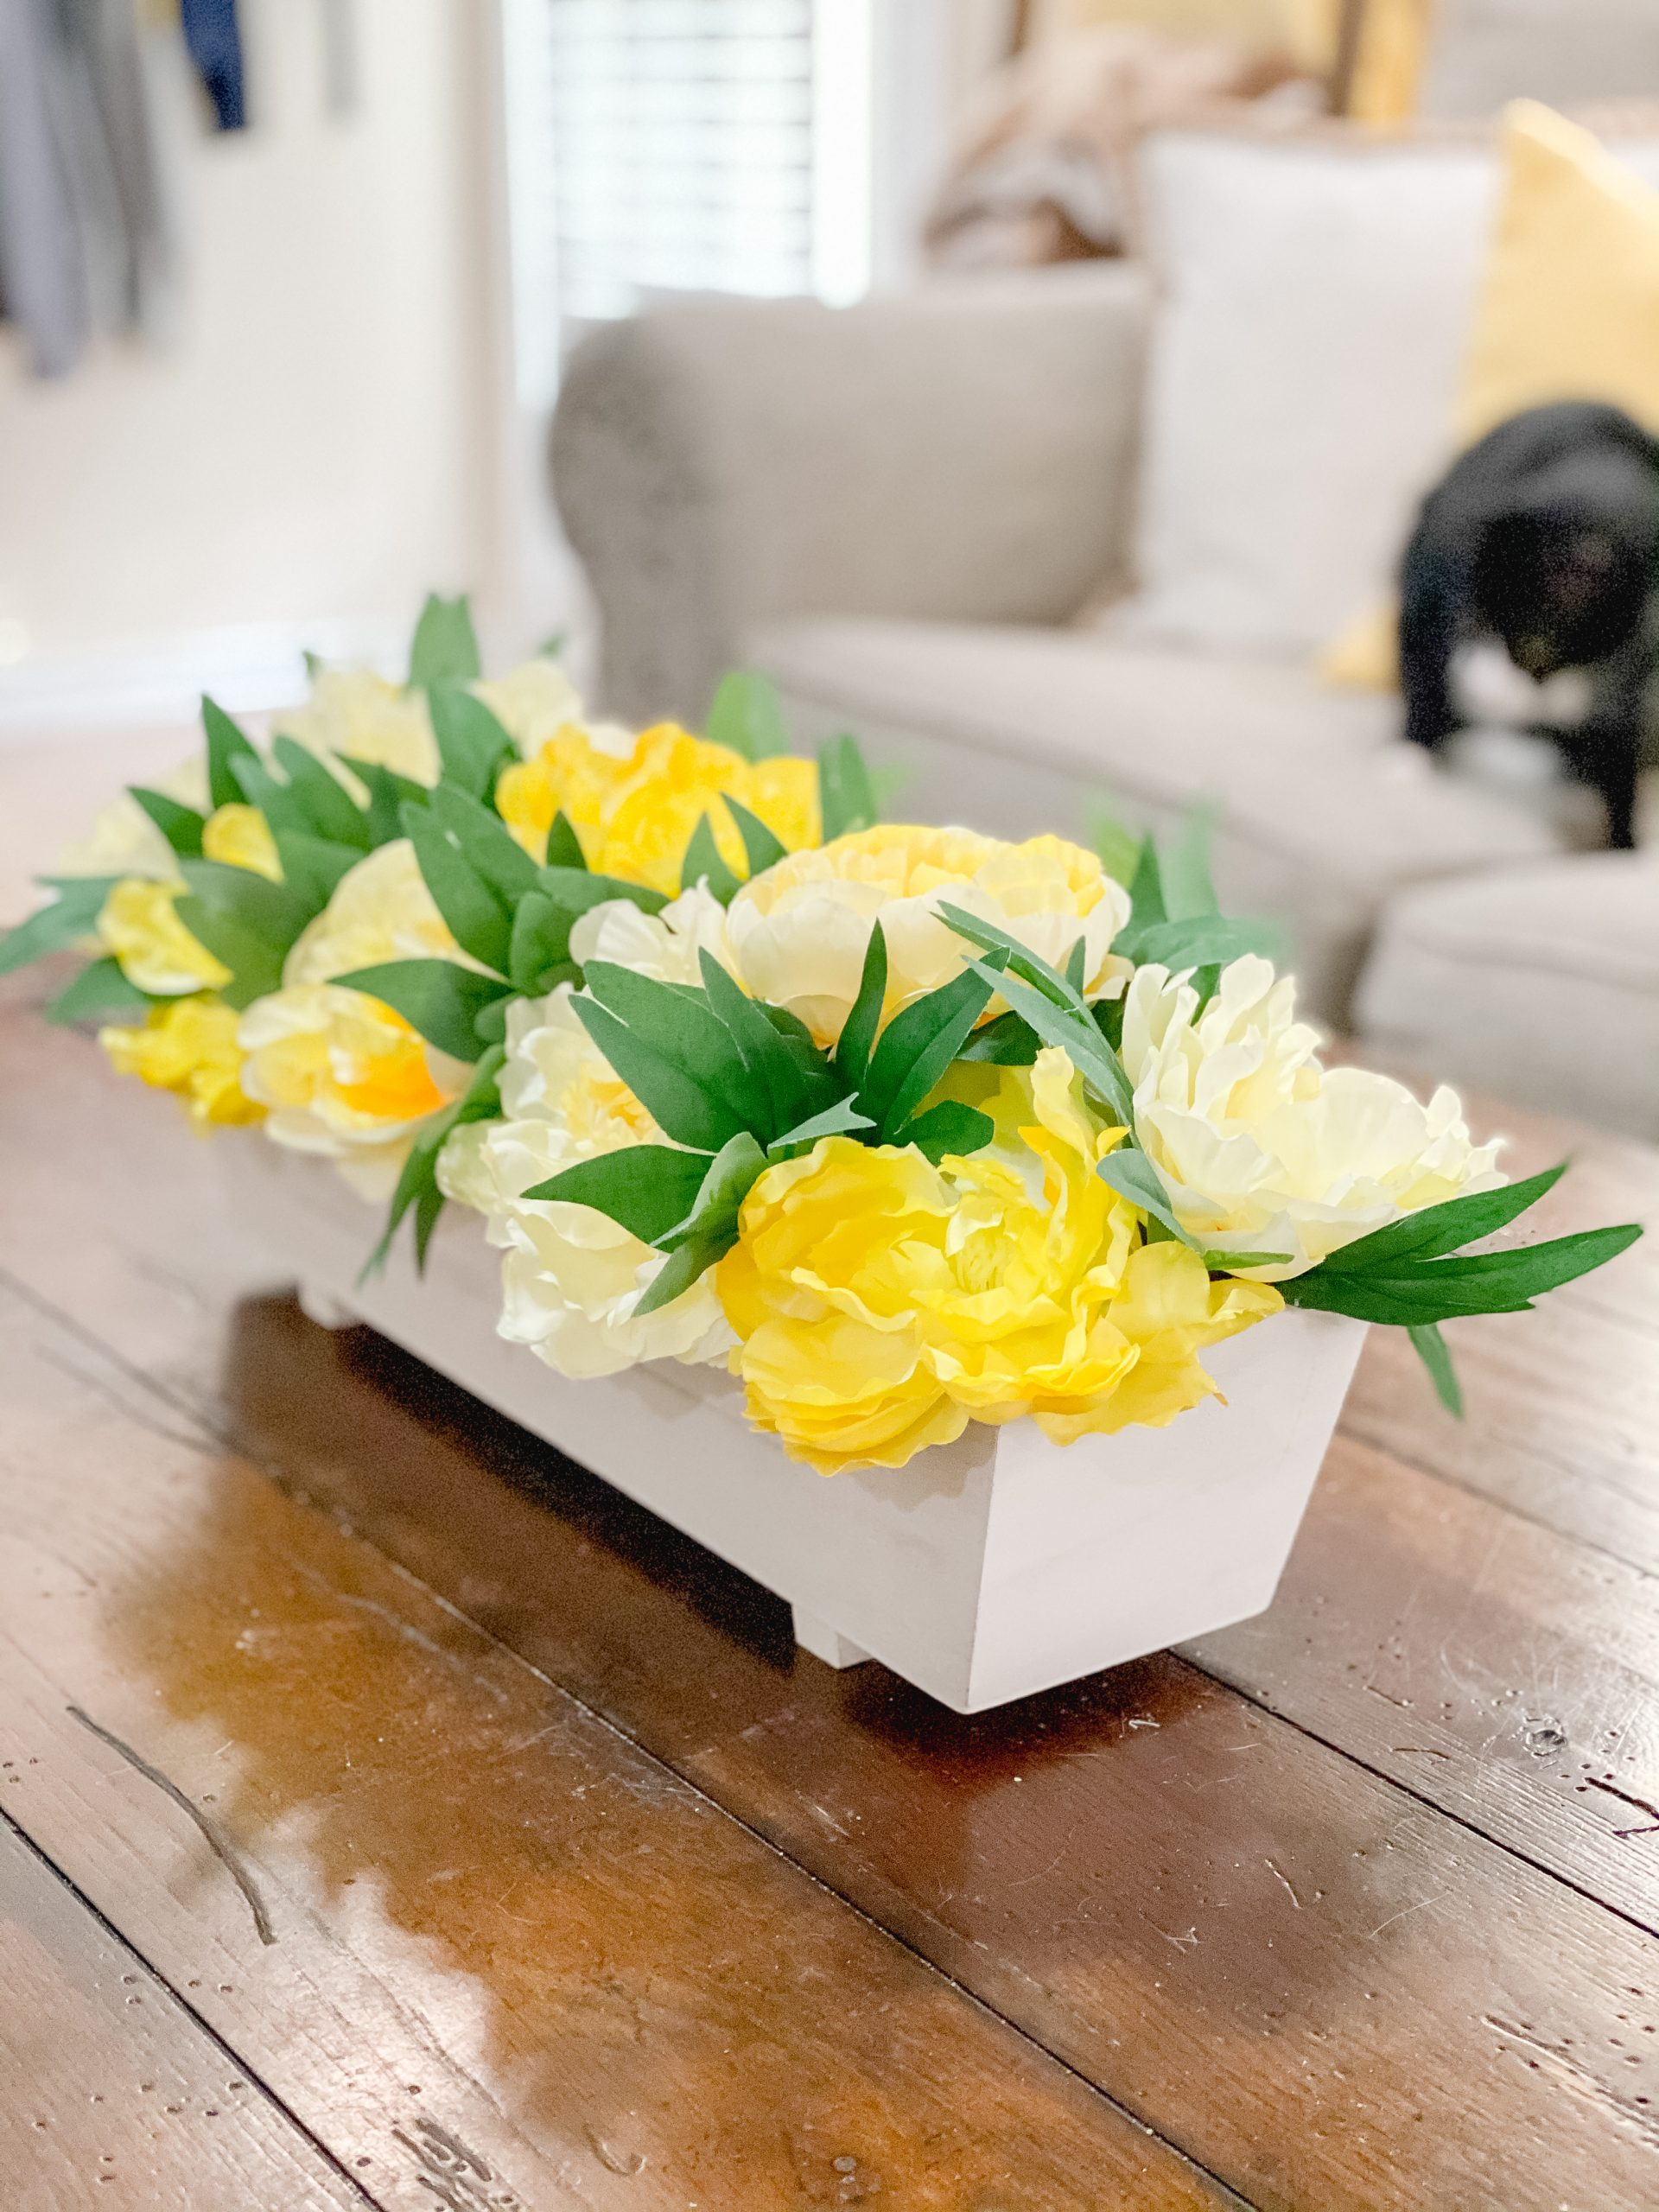 Spring decor on coffee table with spring planter box and yellow flowers.